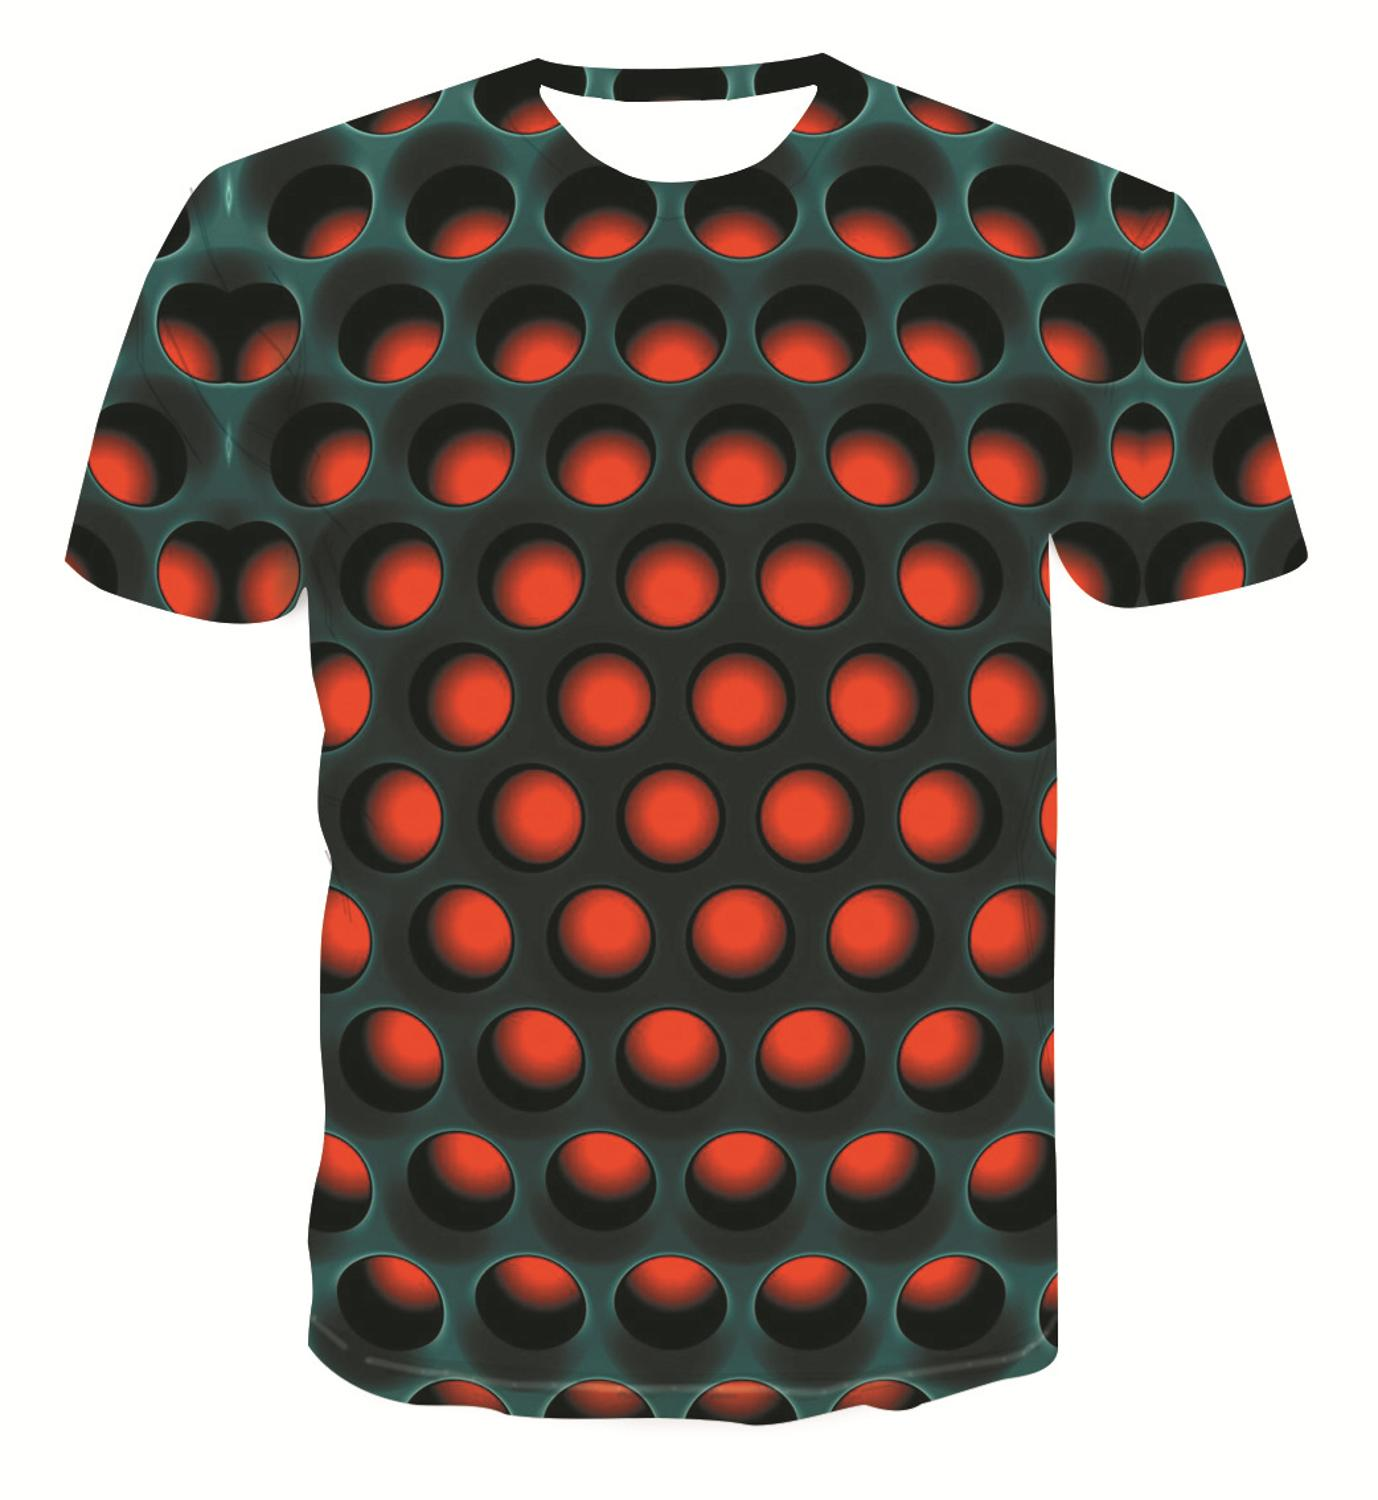 ALI shop ...  ... 32968946937 ... 4 ... 2019 Summer New Men's 3DT Shirt  Fashion T-Shirt Top Cool Plaid Diamond 3D Hip Hop T-Shirt  Brand Men's T-Shirt dropshipping ...